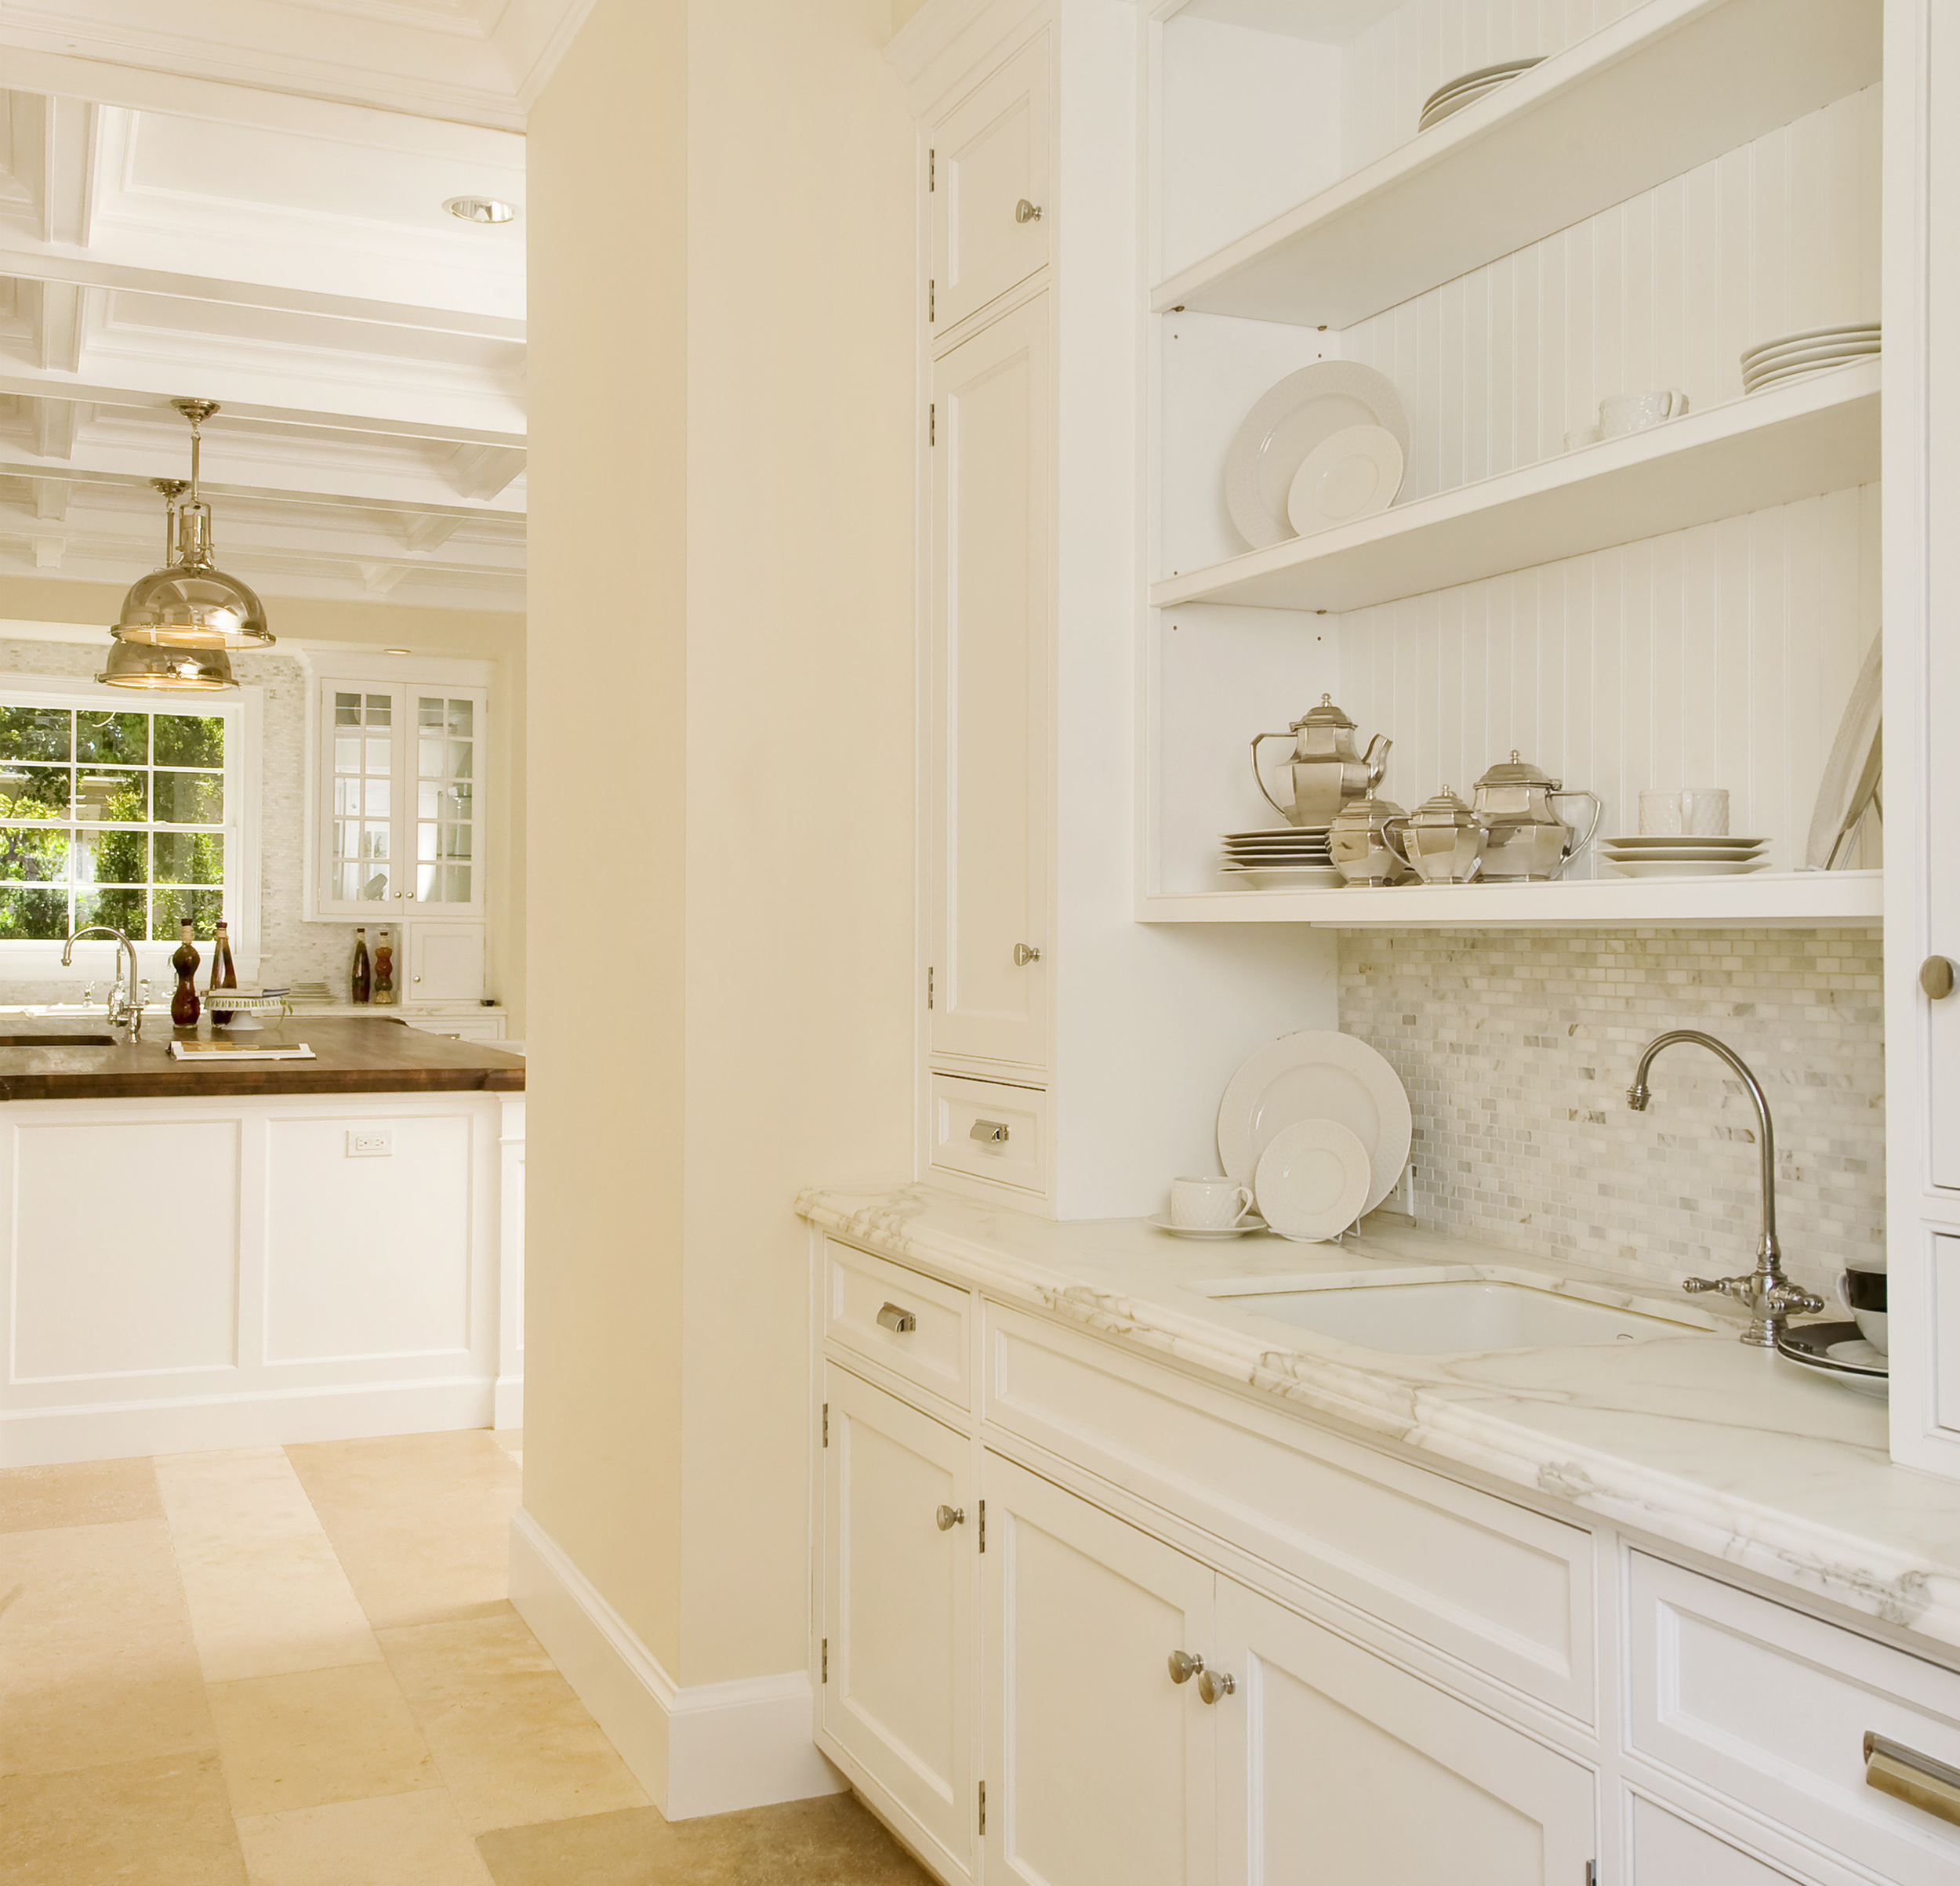 Empire Group. Moreno butler's pantry between Kitchen and Dining room